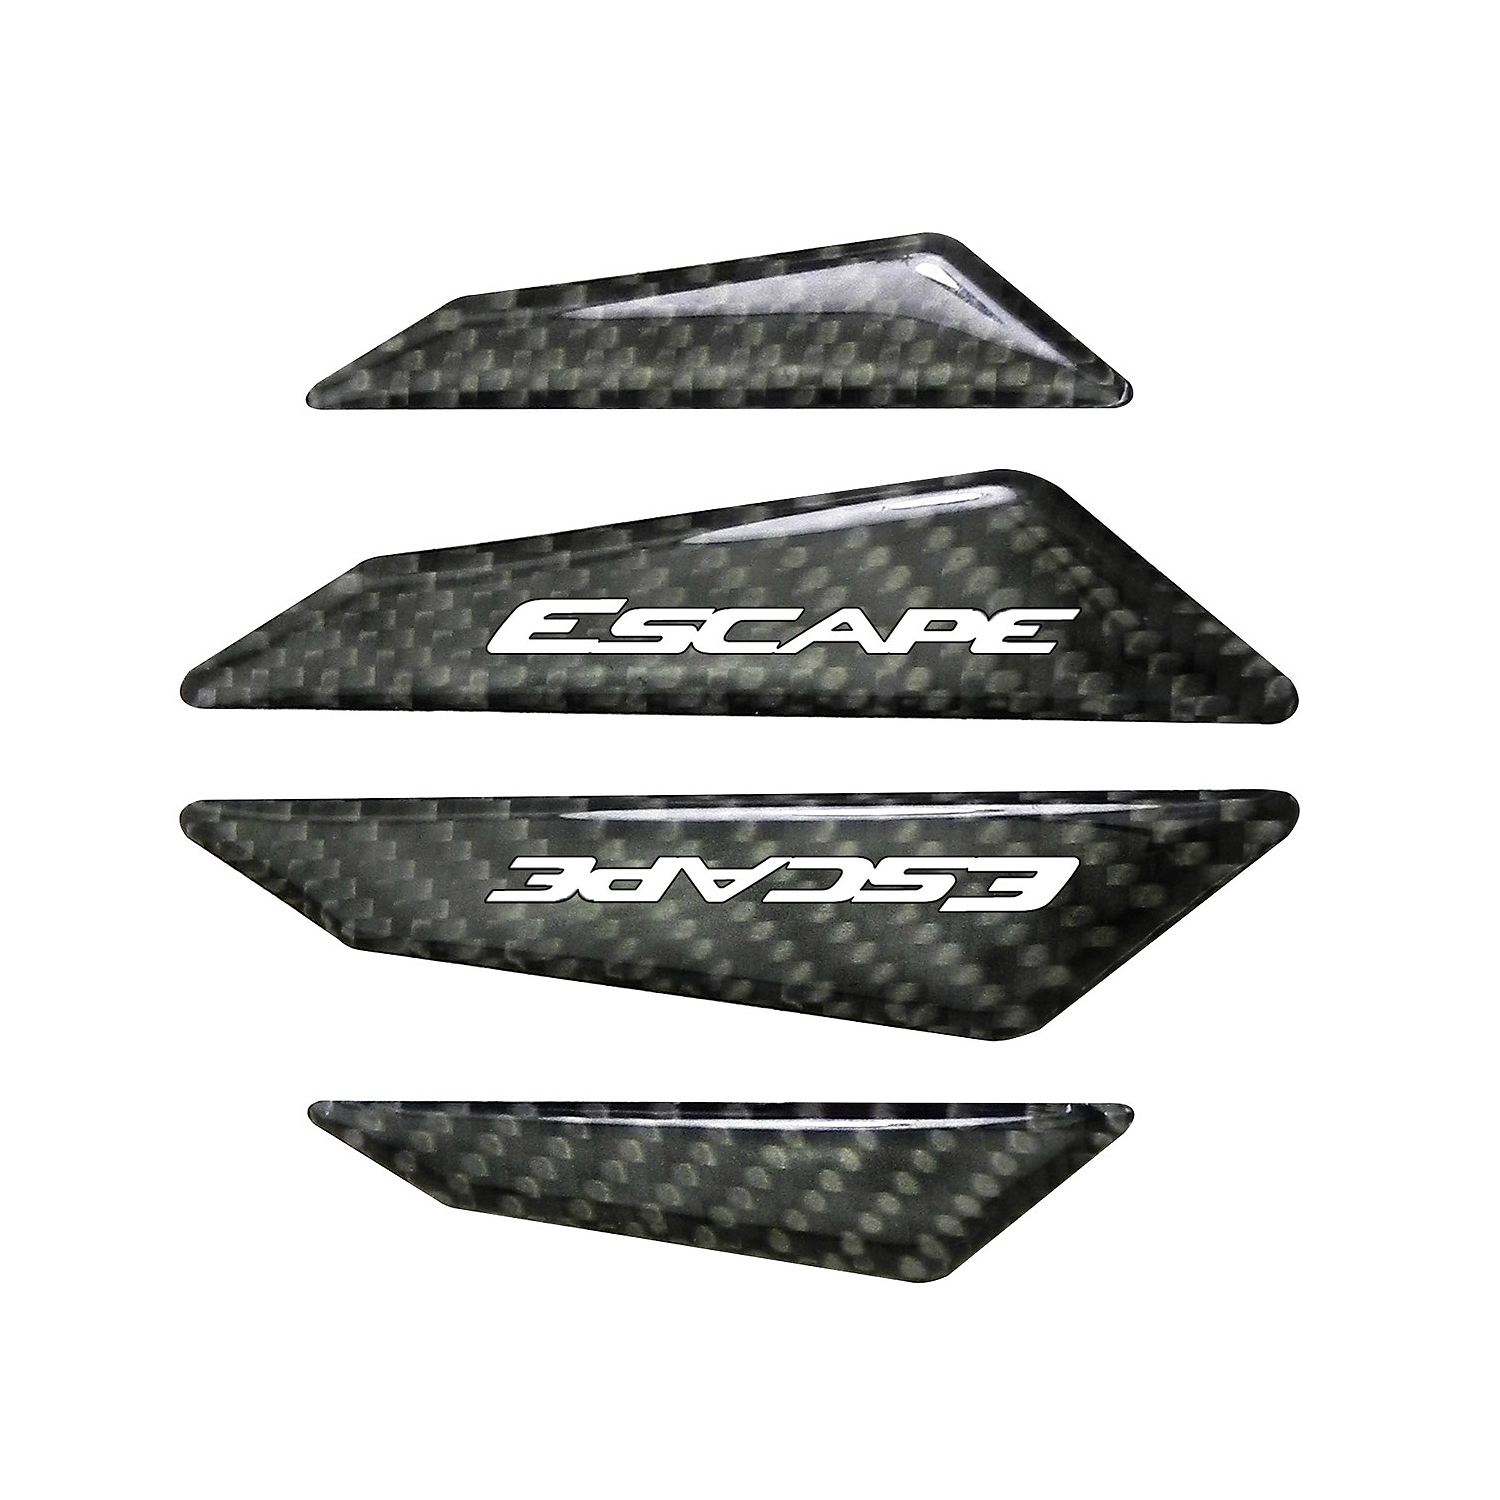 Ford Escape Real Black Carbon Fiber Door Edge Guard Decal